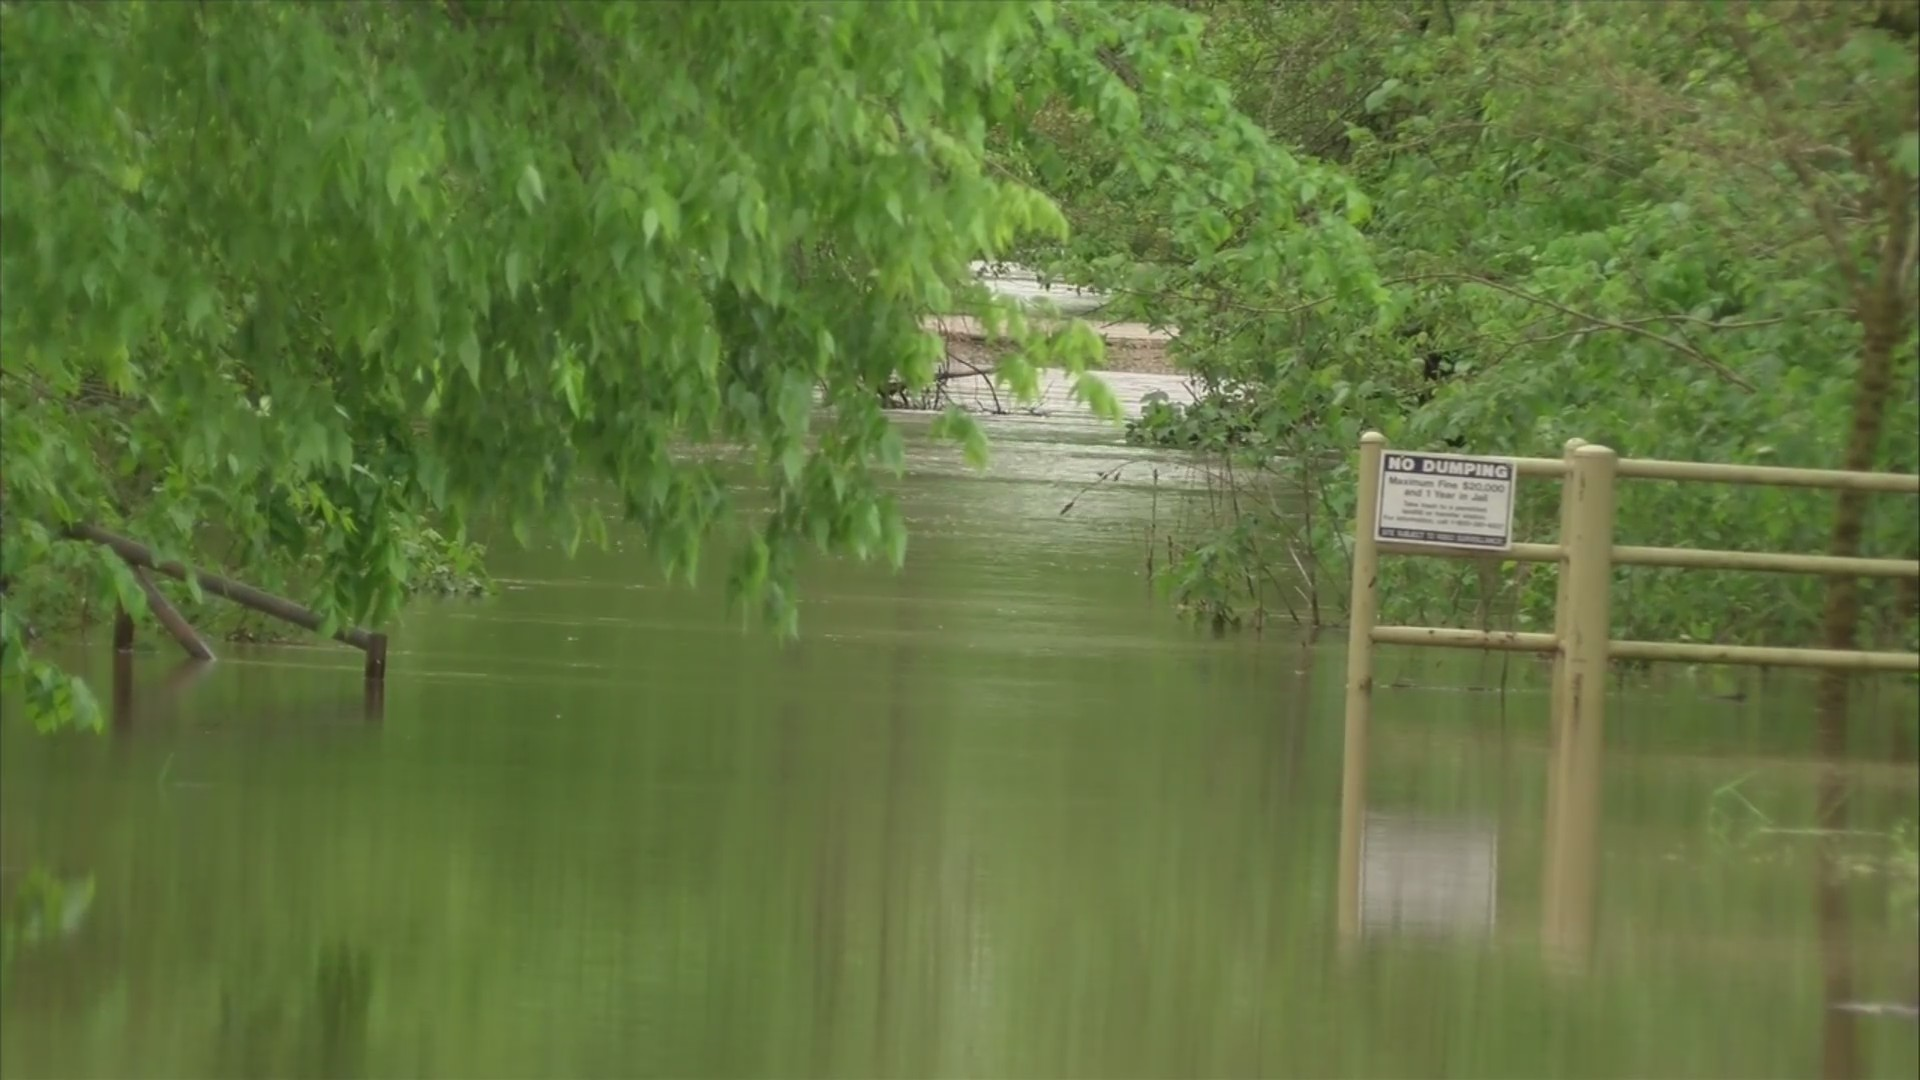 Tuesday's rains cause flooding in Carthage area